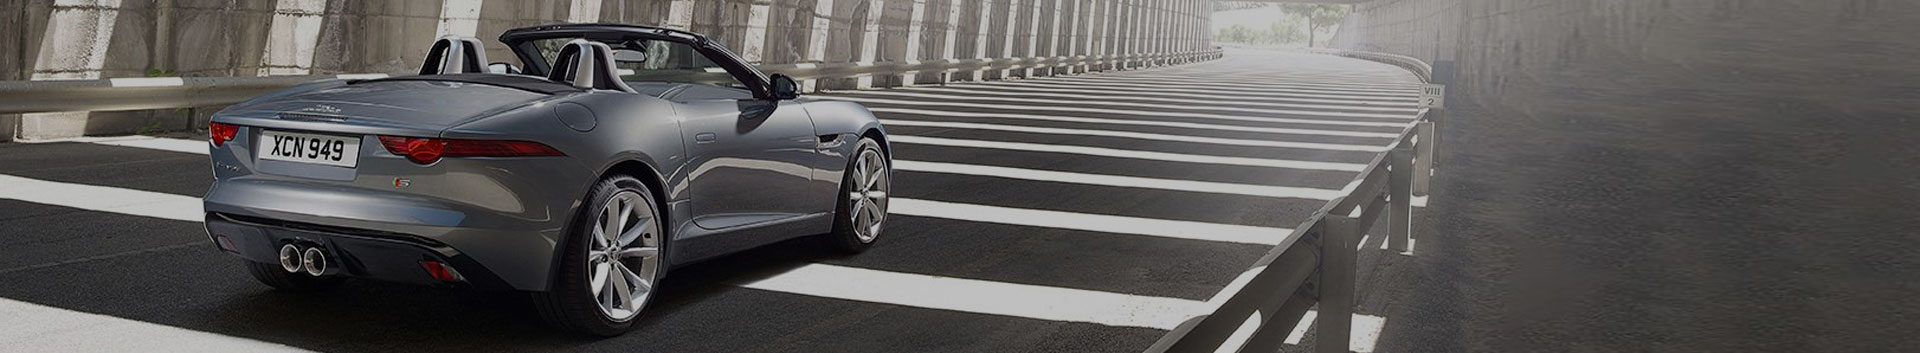 Finance or lease the Jaguar of your dreams